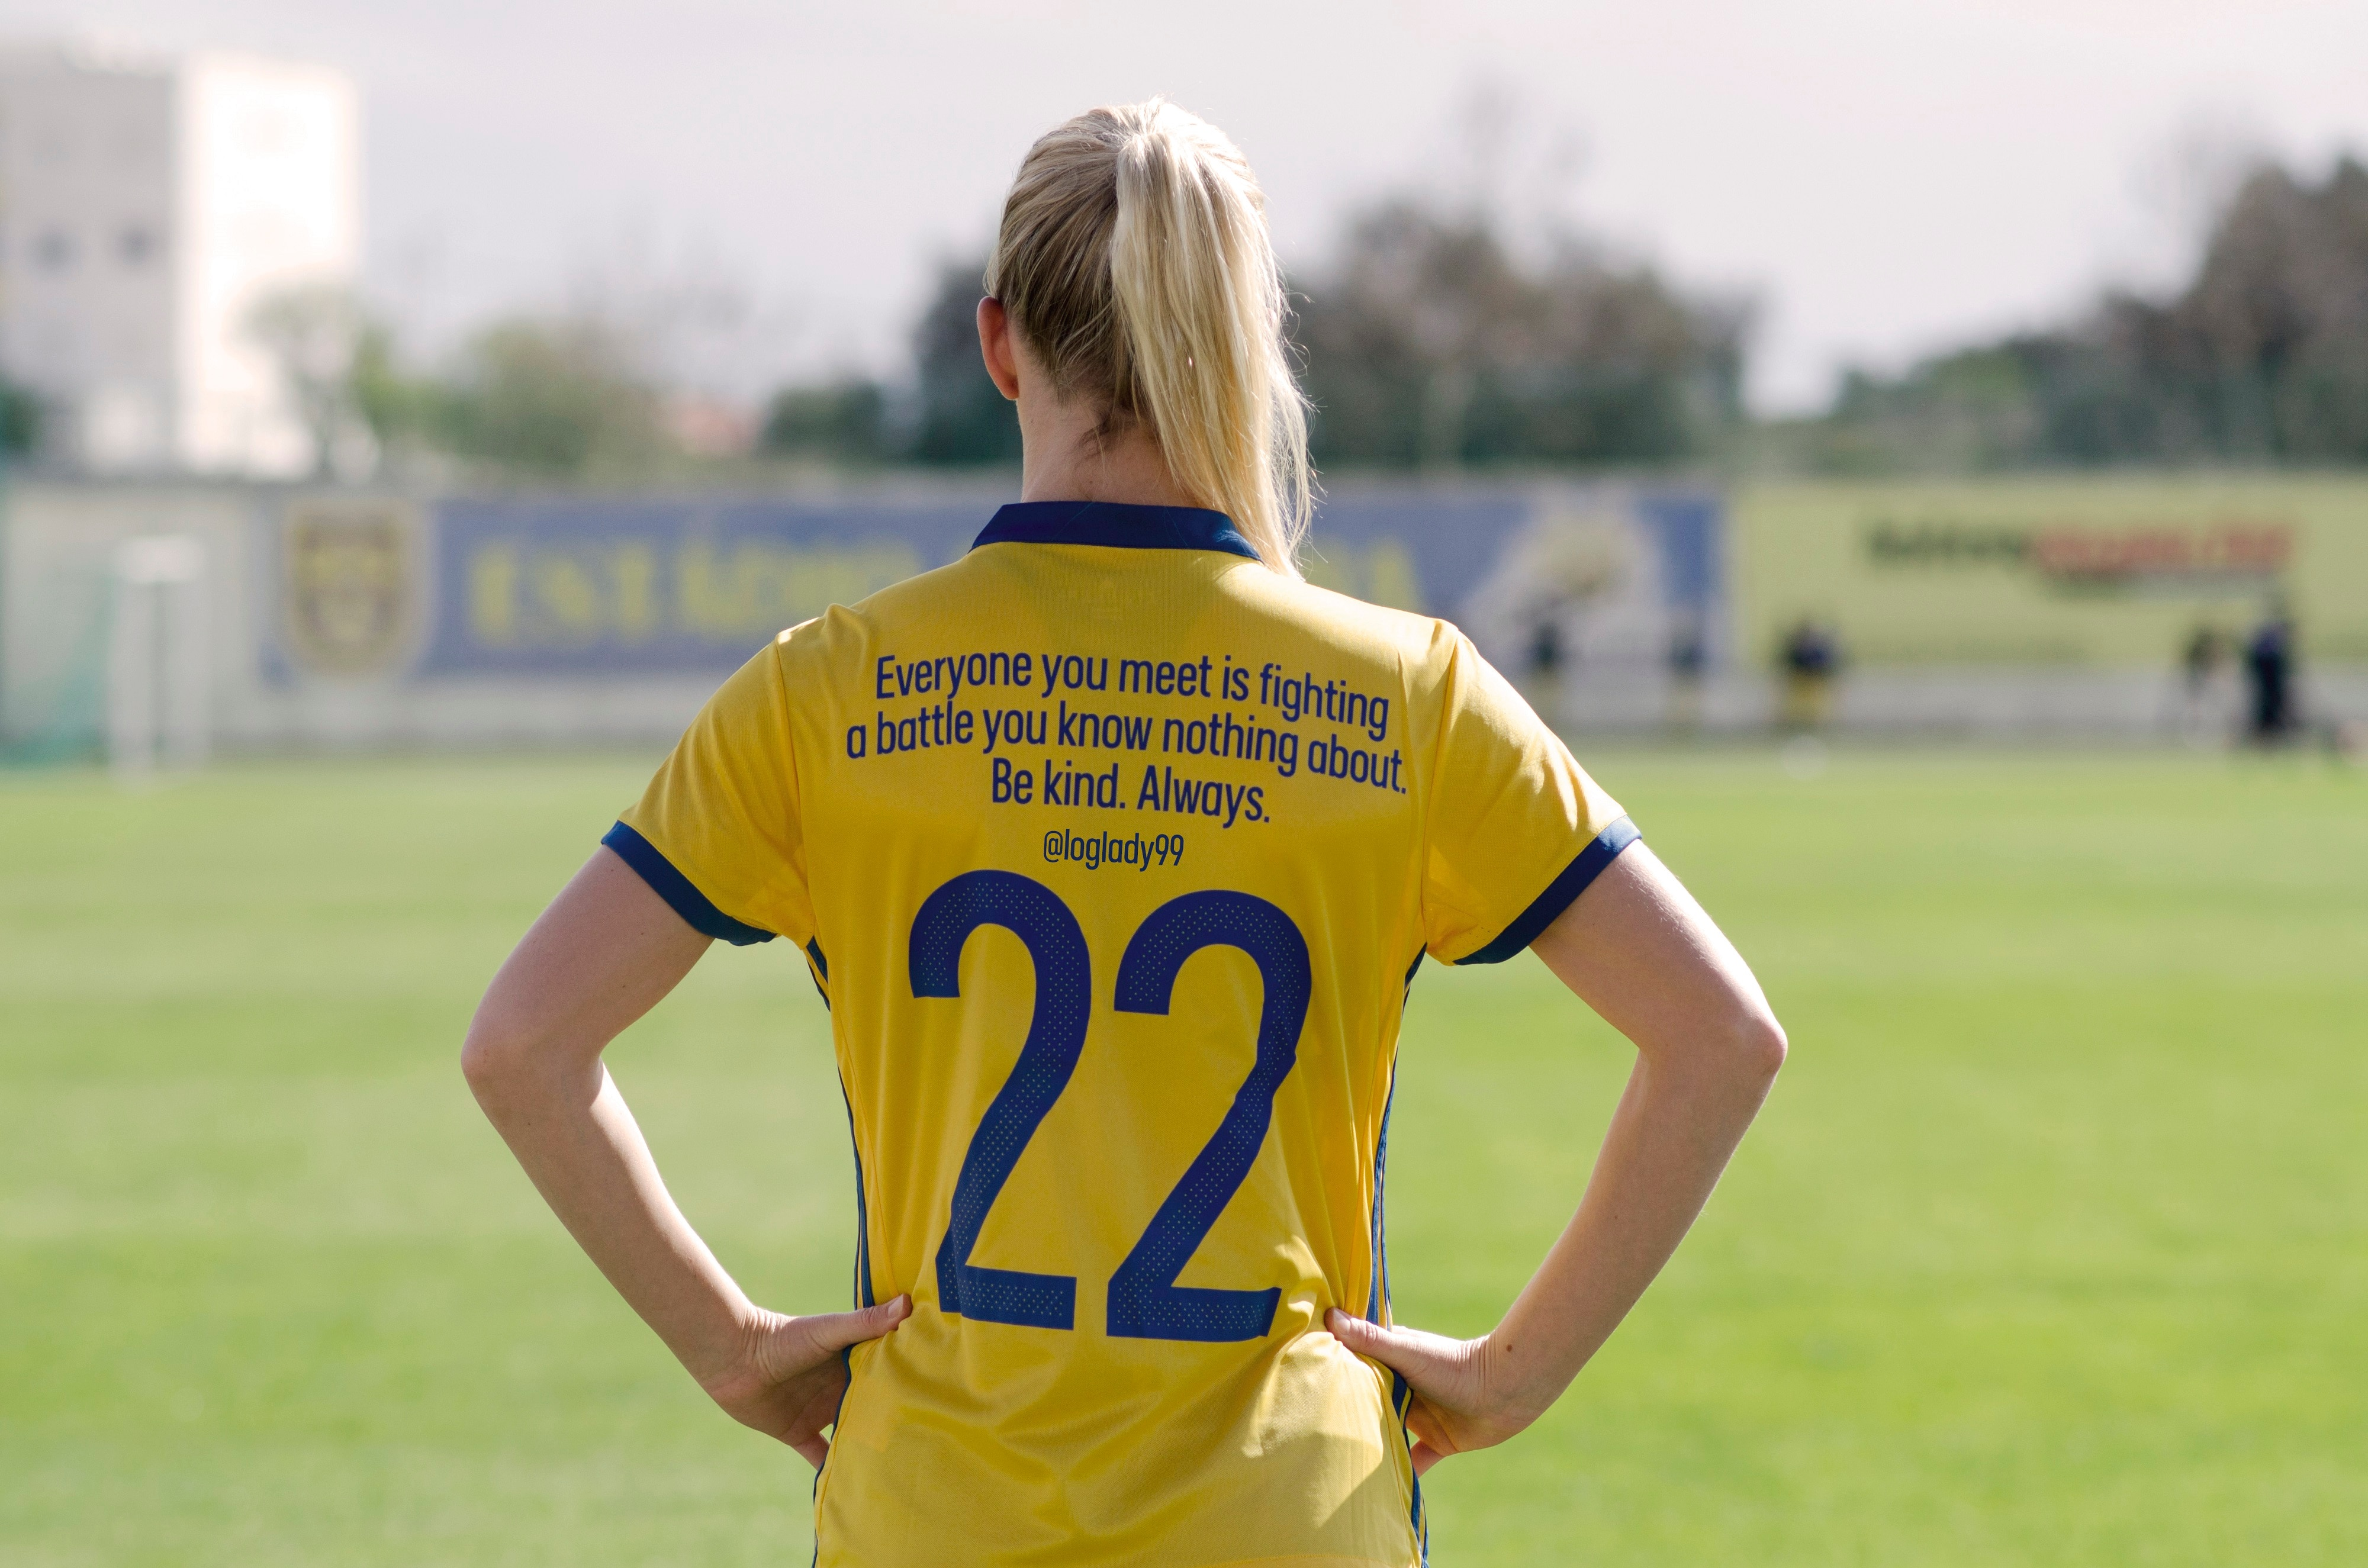 Believe in your damn self': Sweden's football team switches